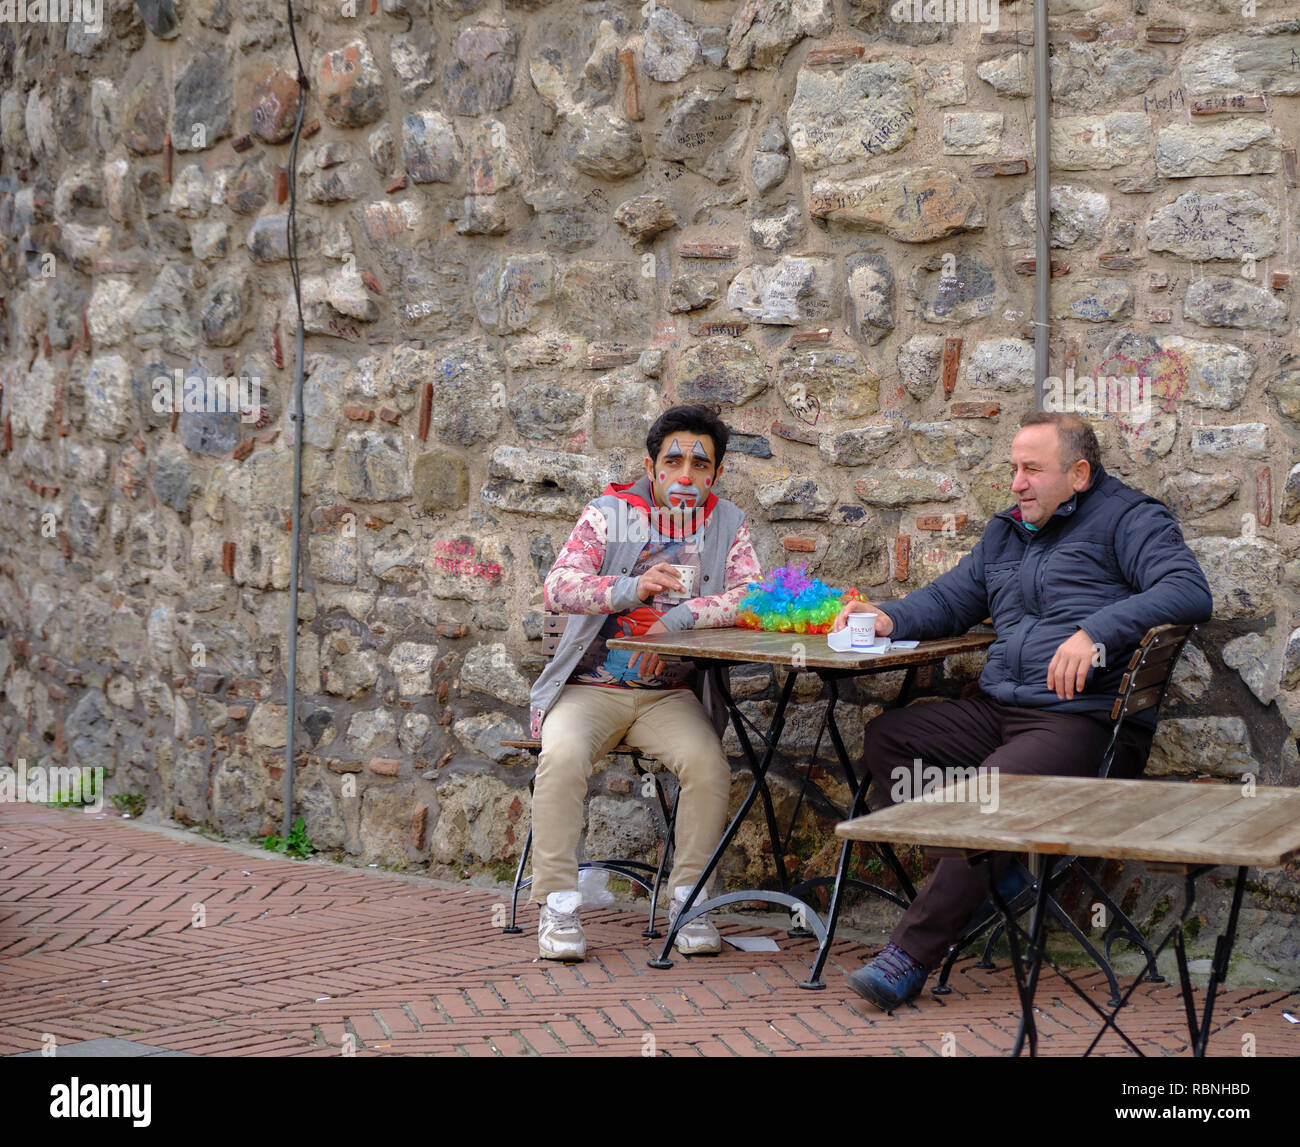 istanbul-clown-having-removed-wig-but-still-with-facial-make-up-sits-down-to-have-a-coffee-with-older-gentleman-by-galata-tower-RBNHBD.jpg